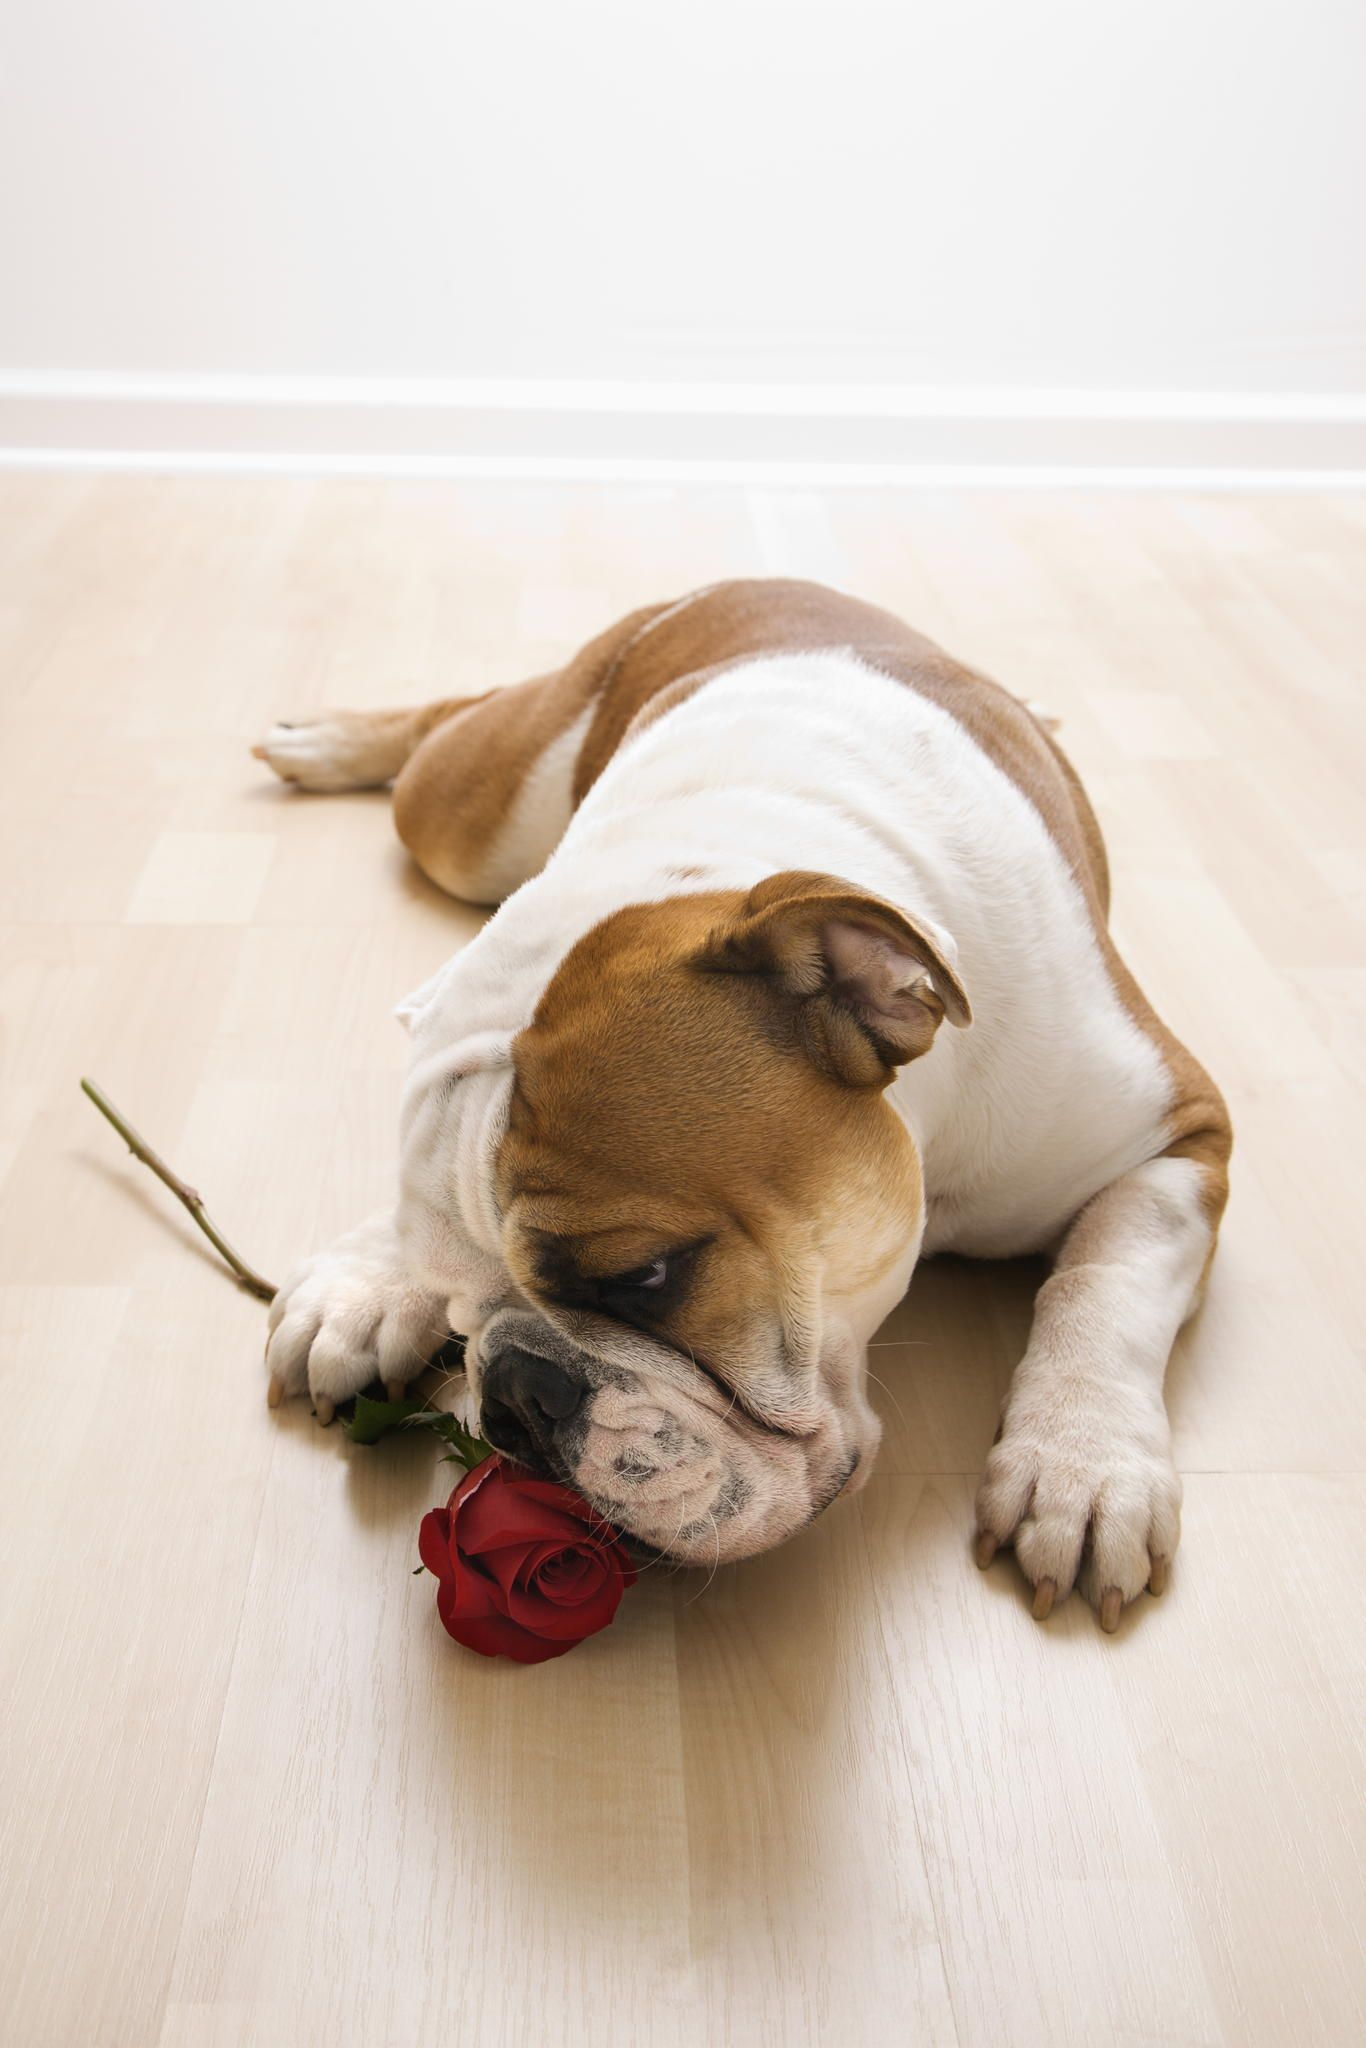 Dog sniffing red rose. - English Bulldog lying on floor sniffing long-stemmed red rose.